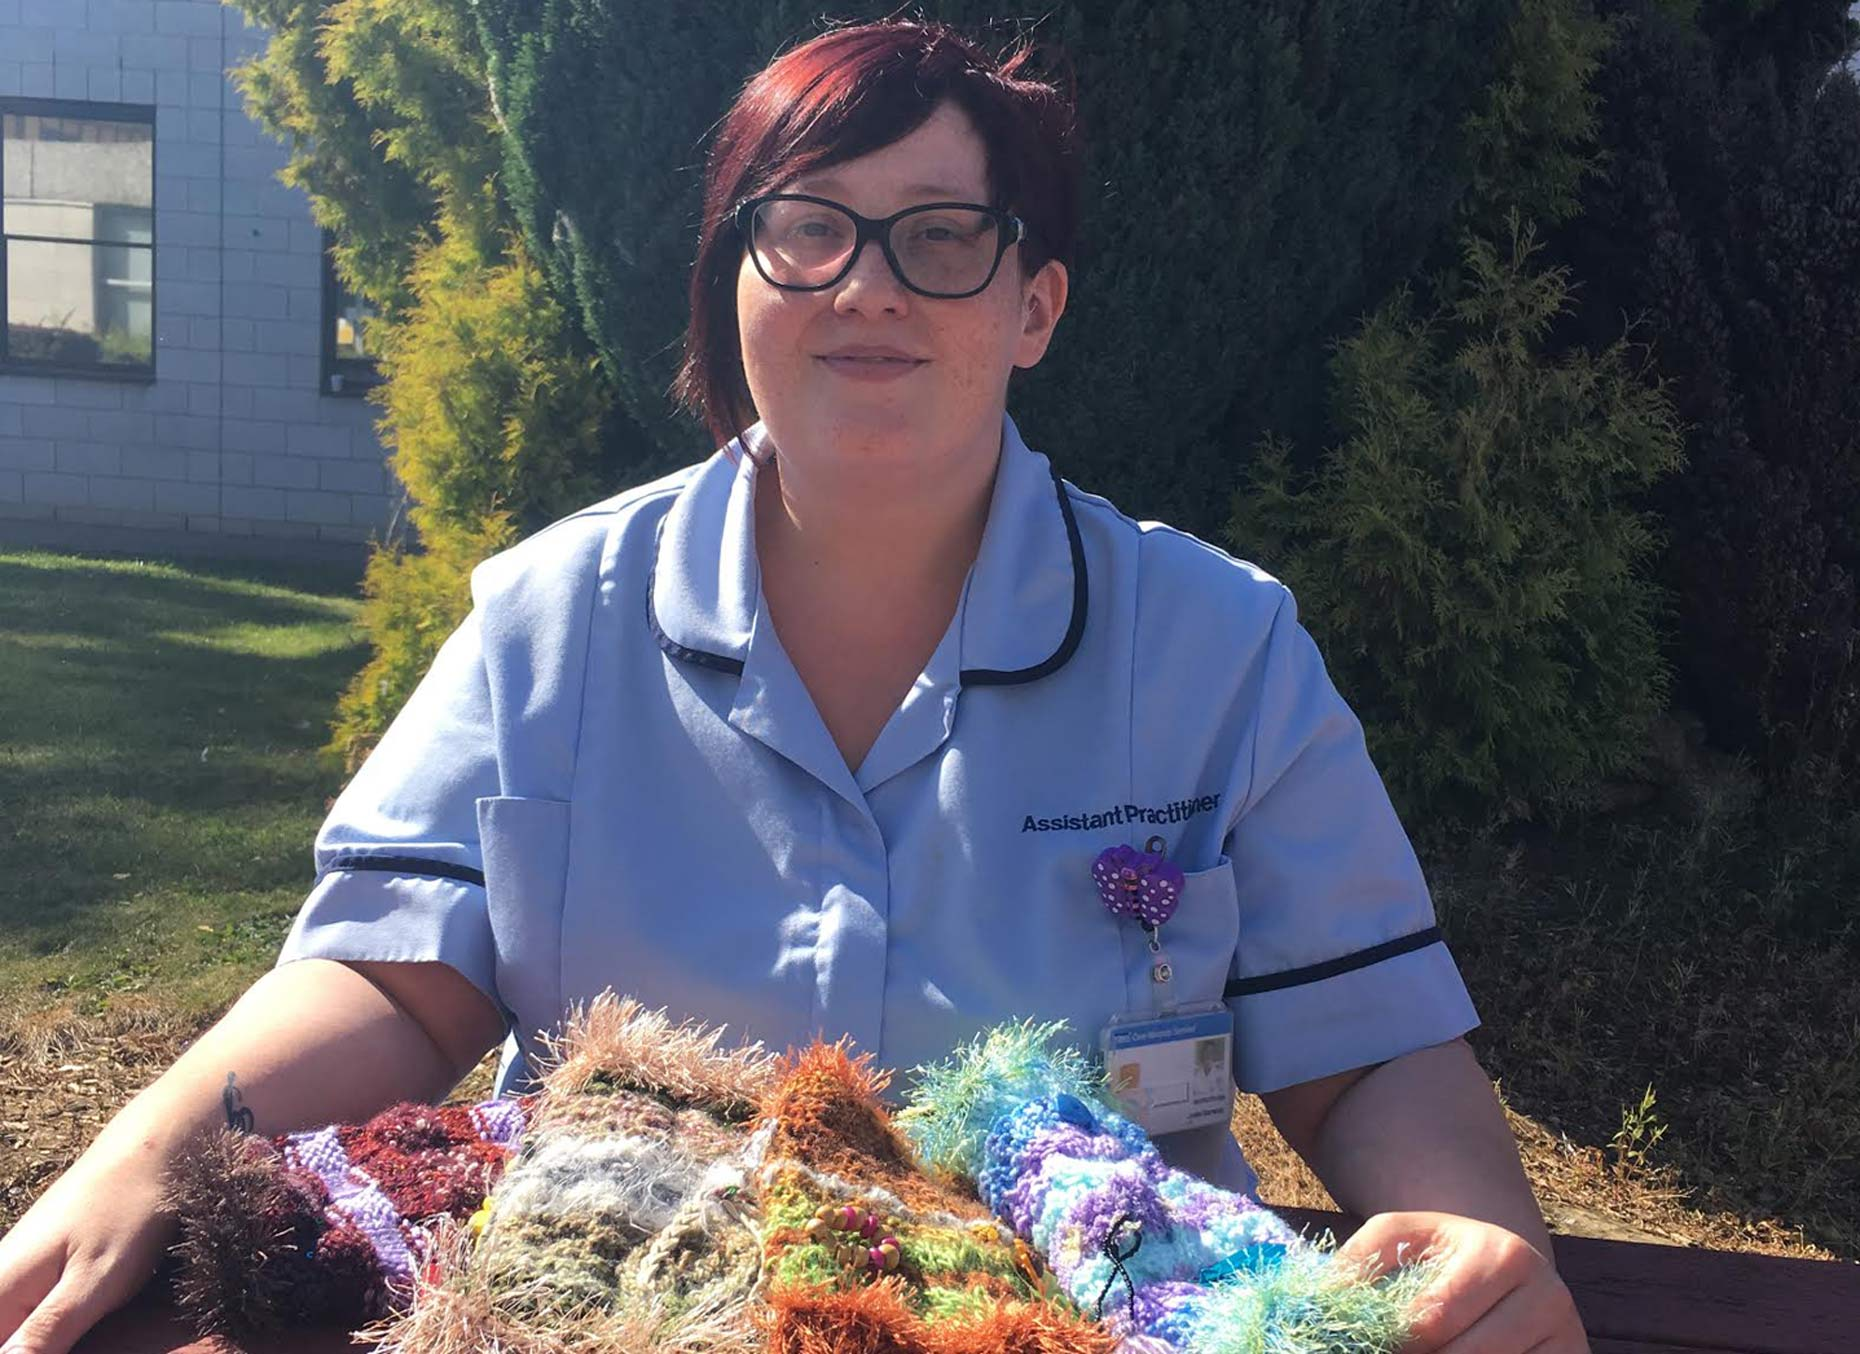 Jodie, with fiddle blankets and twiddle muffs, which are used by patients who are distressed.